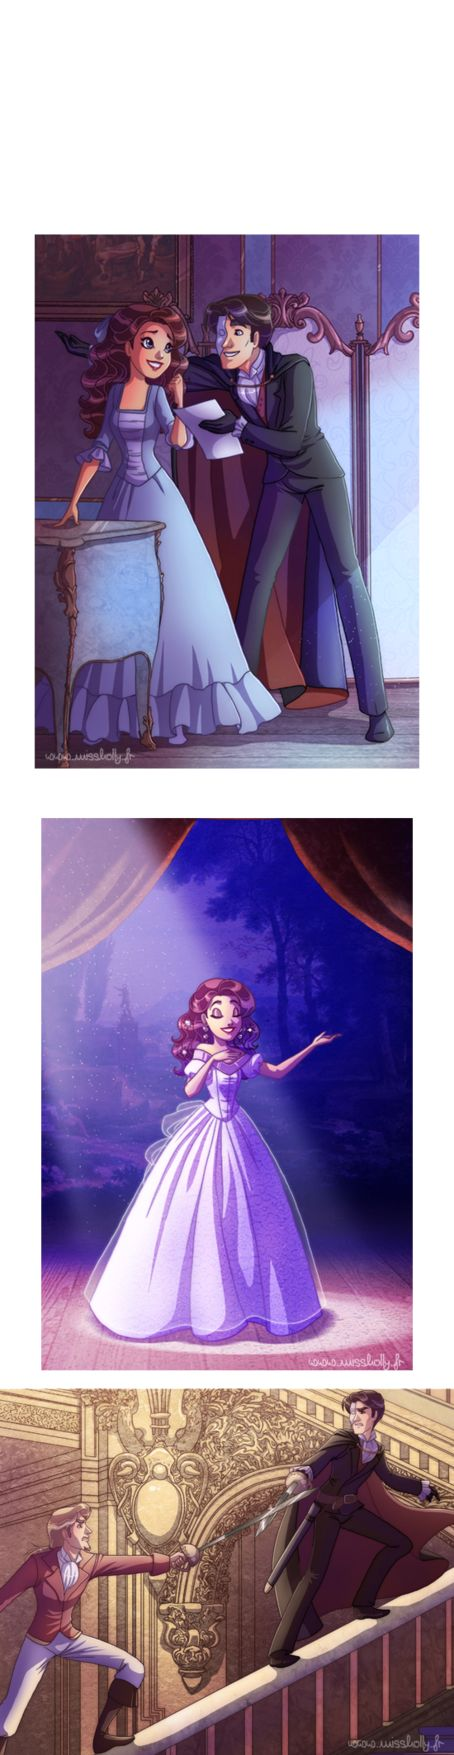 A while back I made a little remake of the Phantom of the Opera, Disney style. In my story Erik is the nice guy who gets the girl in the end, of course. Team Erik ! Art (c) Me Do not edit, crop or ...